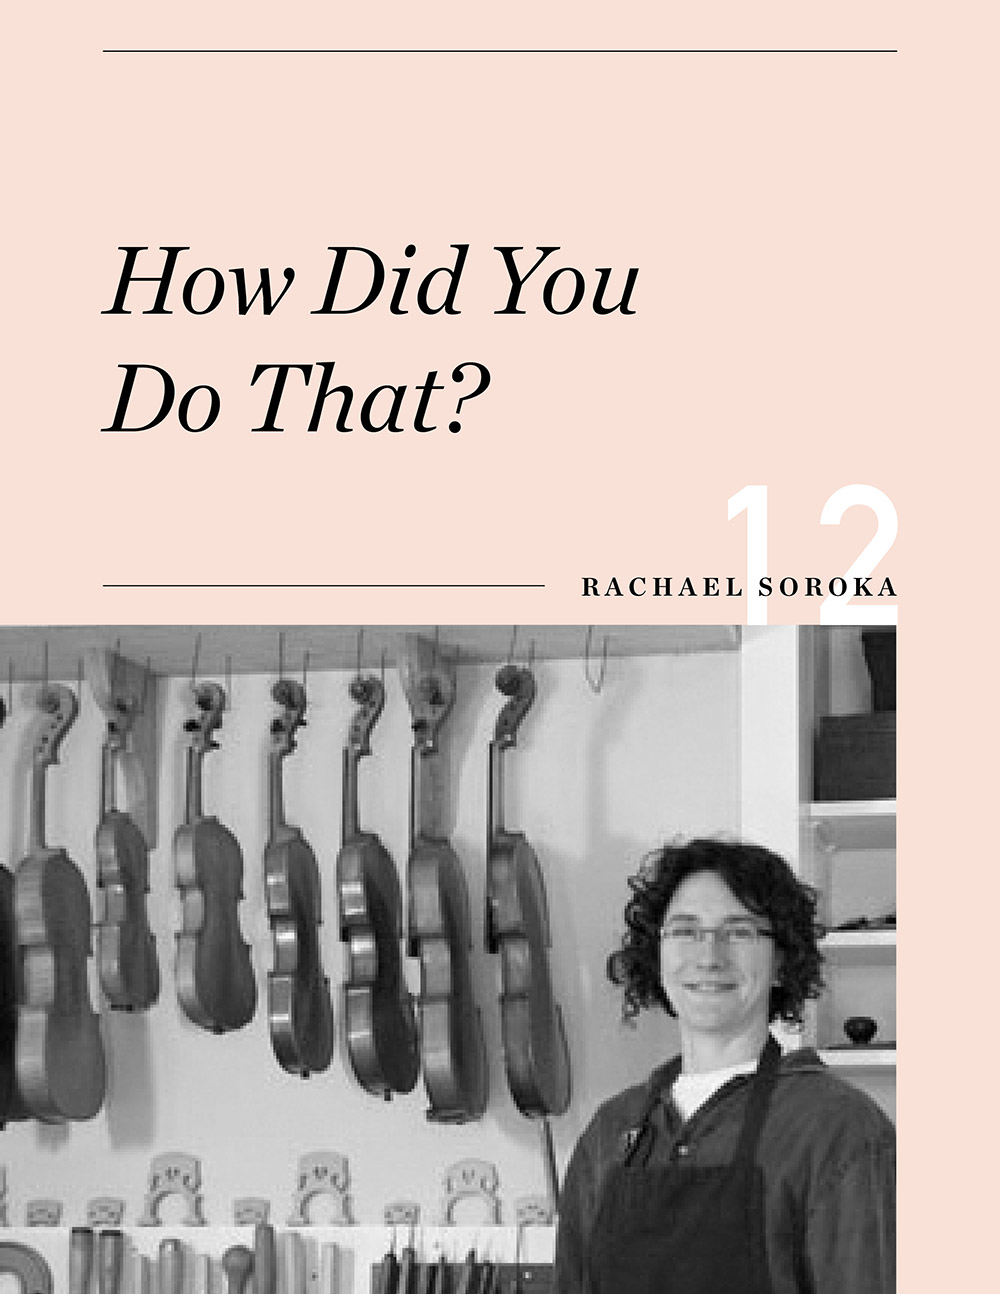 Ellen Fondiler | An Interview With Rachael Soroka